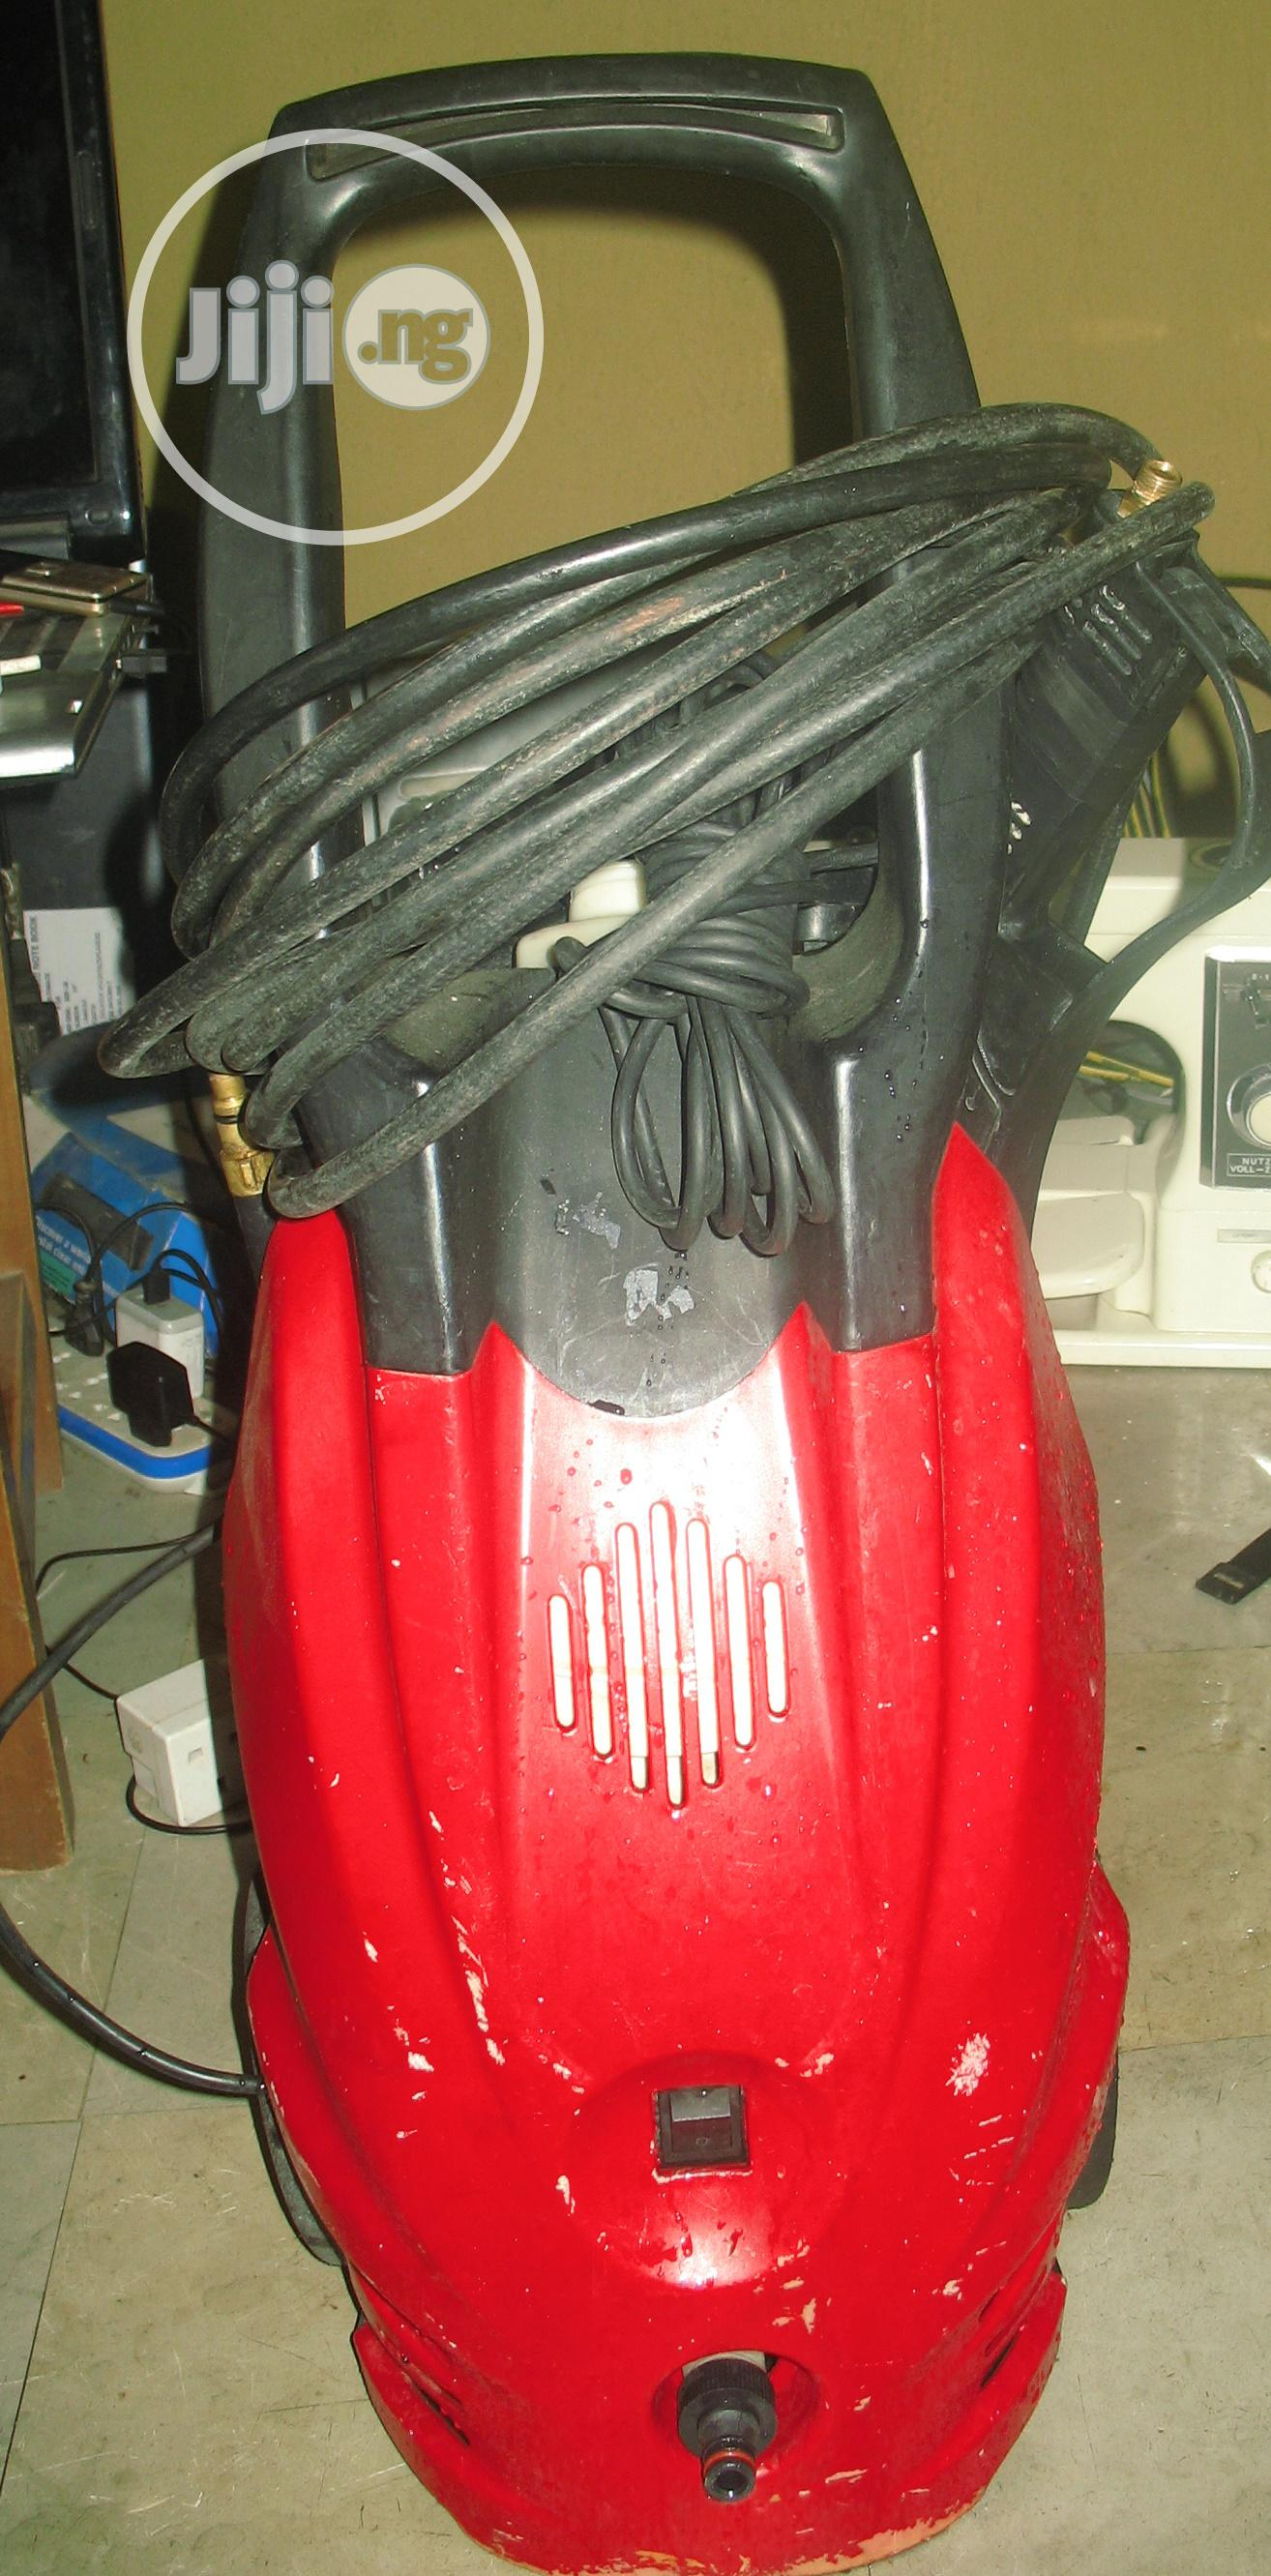 HPV High Pressure Washer With The Vario Lance And Inbuilt Soap Tank   Garden for sale in Ikeja, Lagos State, Nigeria